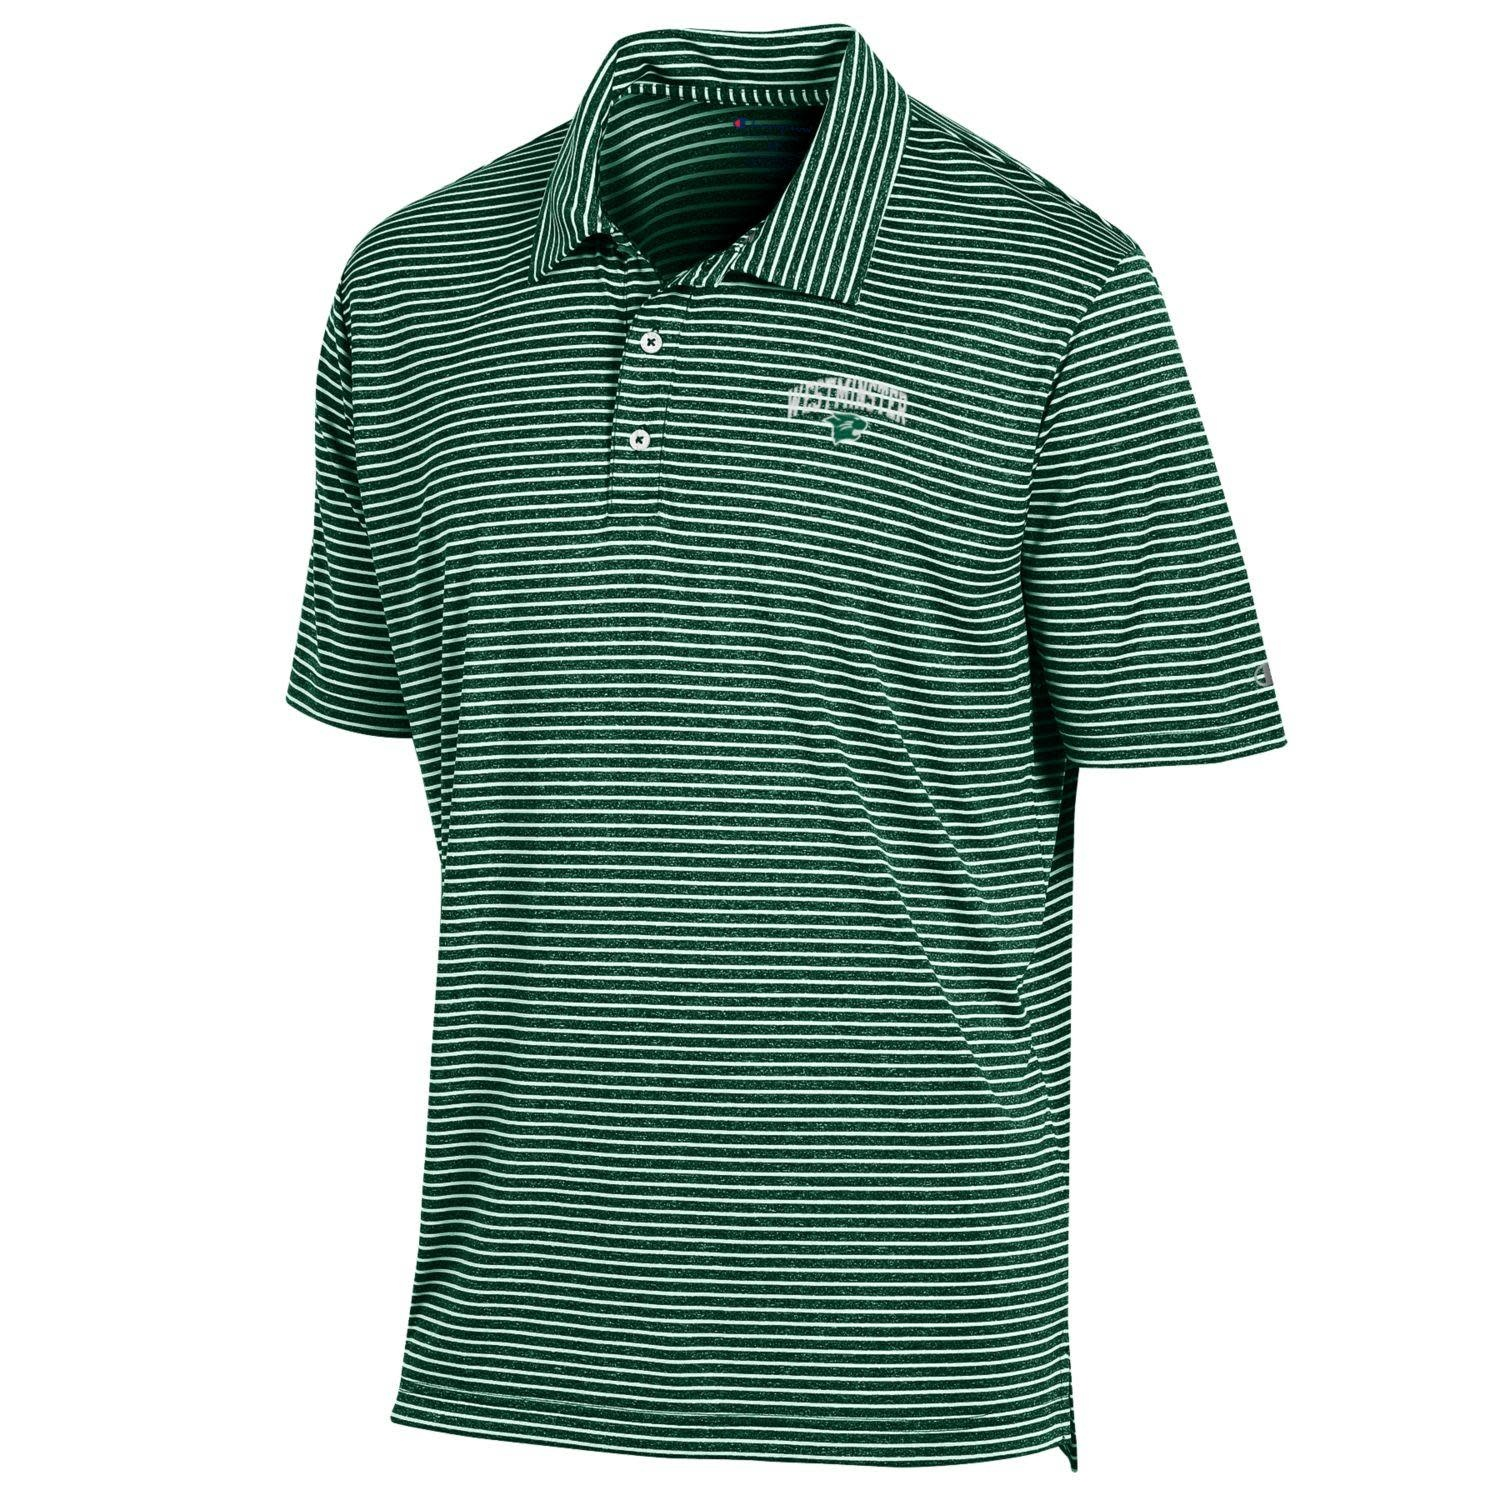 Polo: Champion Green & White Stadium Stripe - WM over Logo